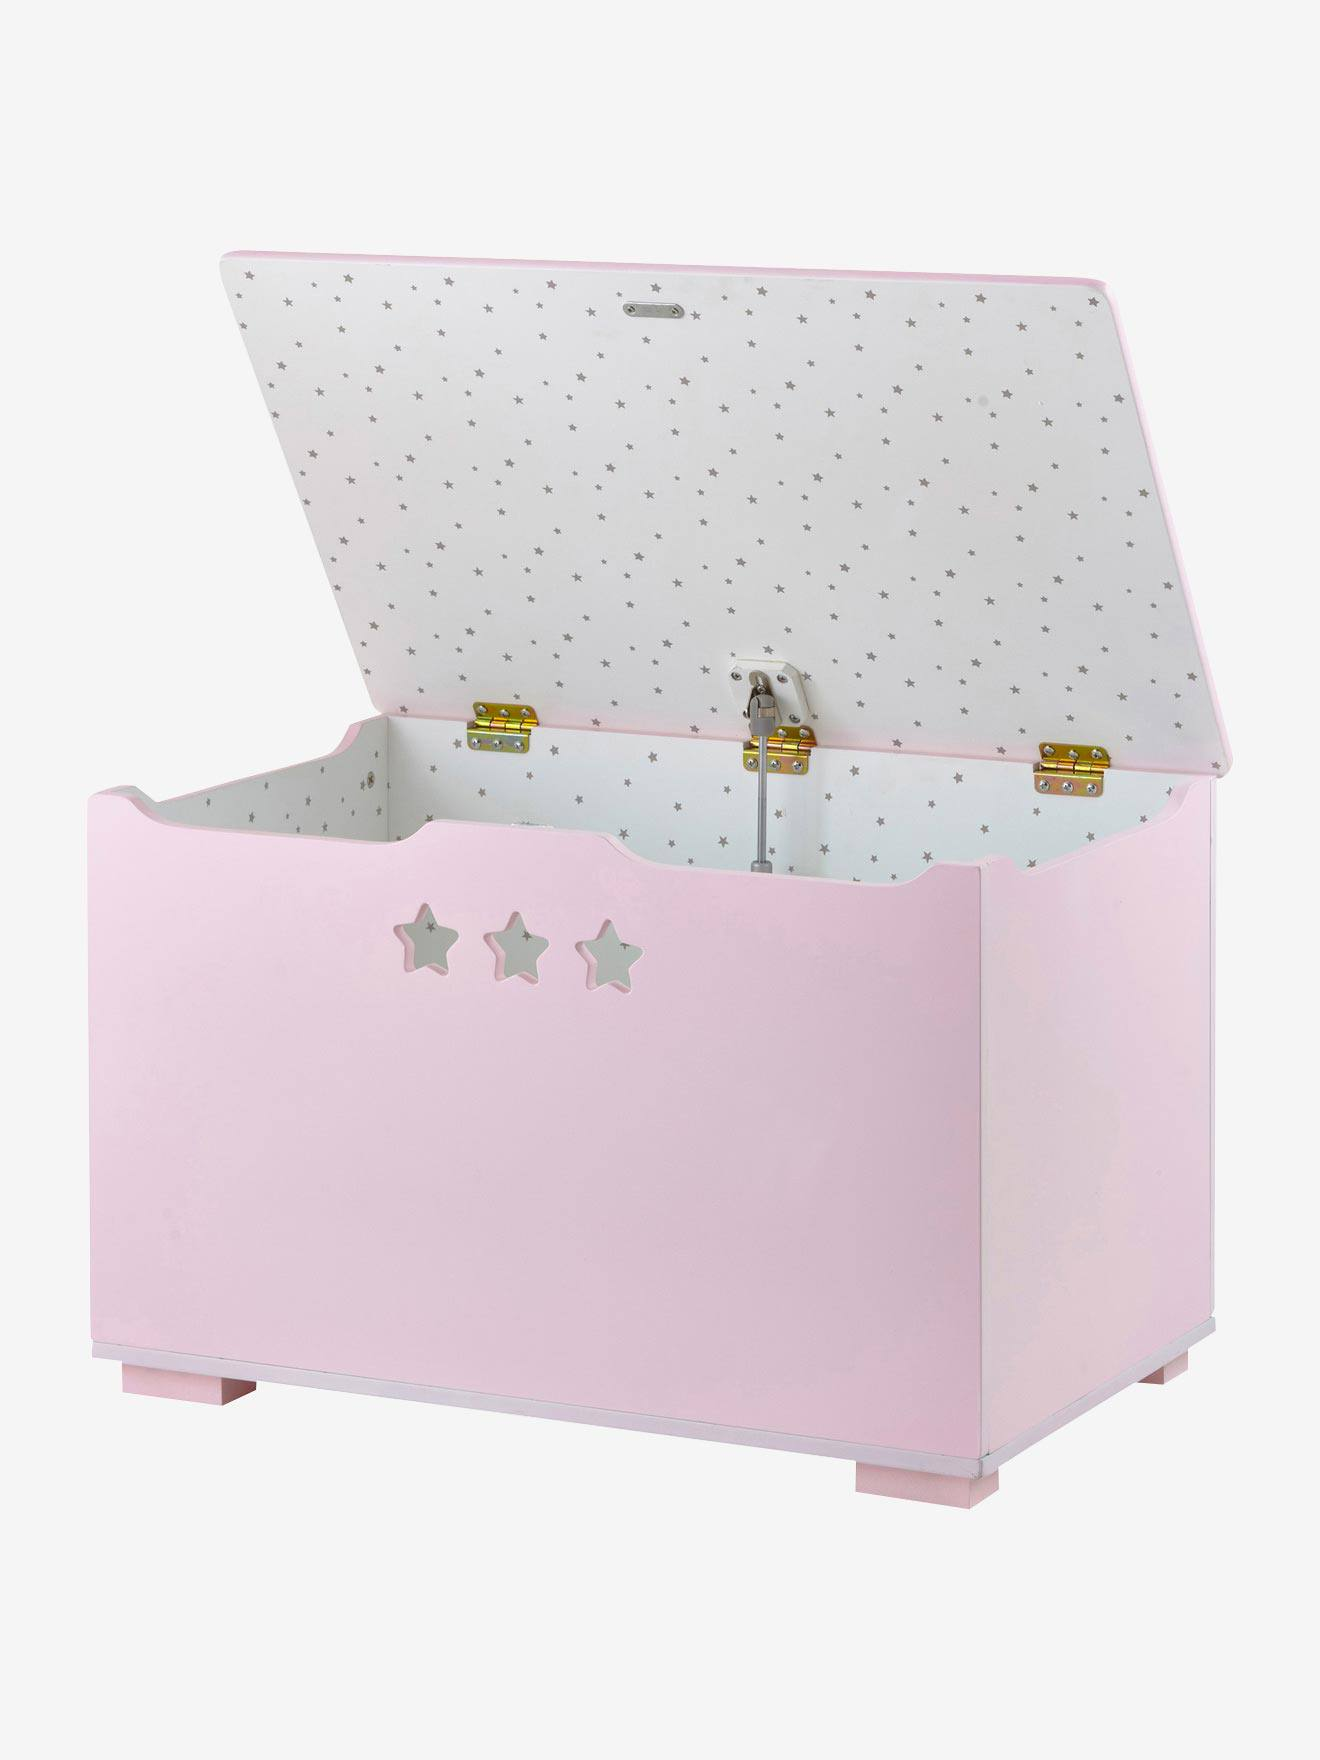 caisse de rangement jouet great coffre jouets coffre de rangement elisa pin massif lasur blanc. Black Bedroom Furniture Sets. Home Design Ideas